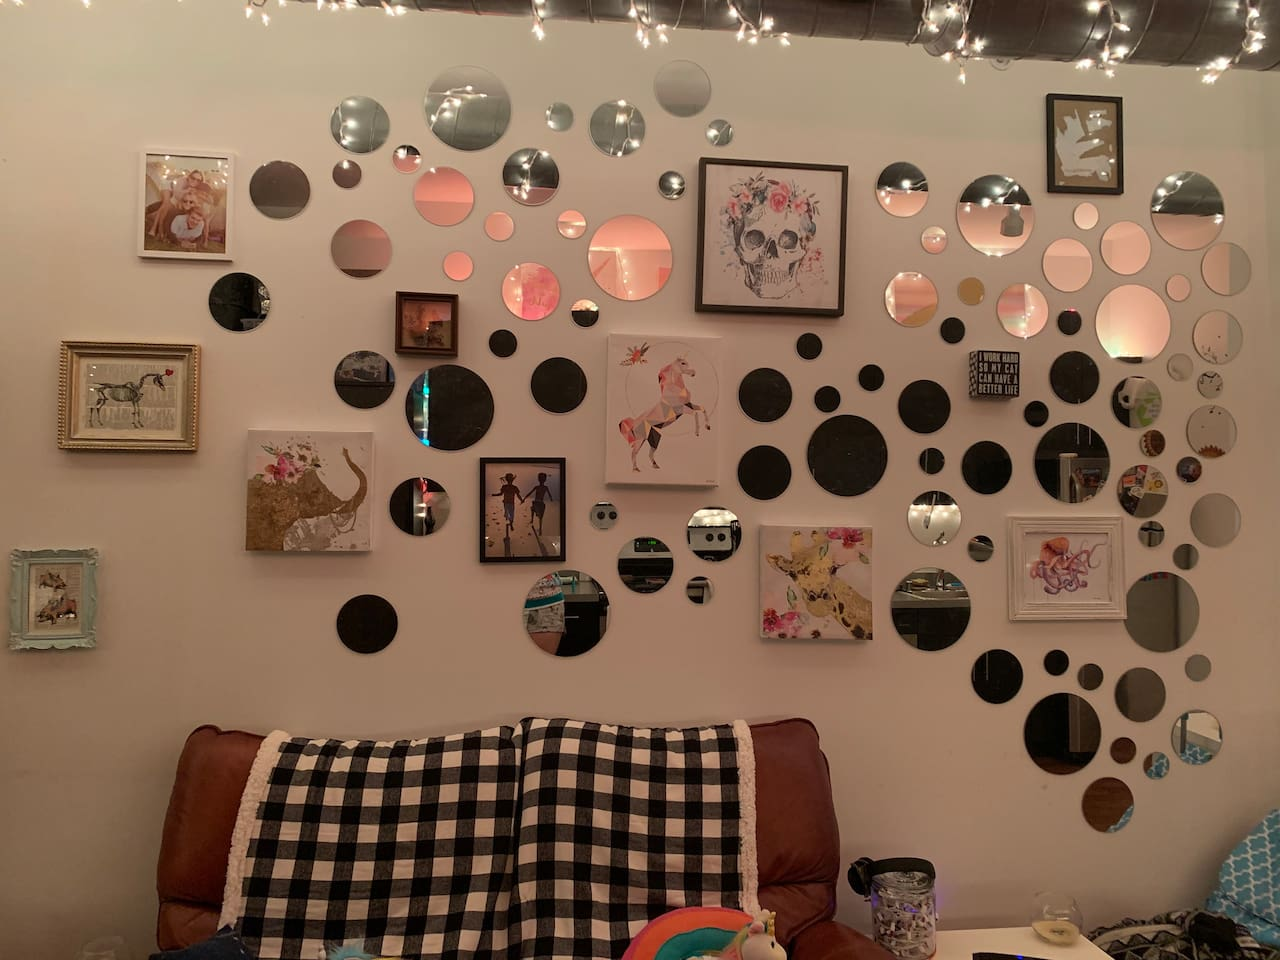 Working on my feature wall. Original art, mirrors, and inspiration ;)